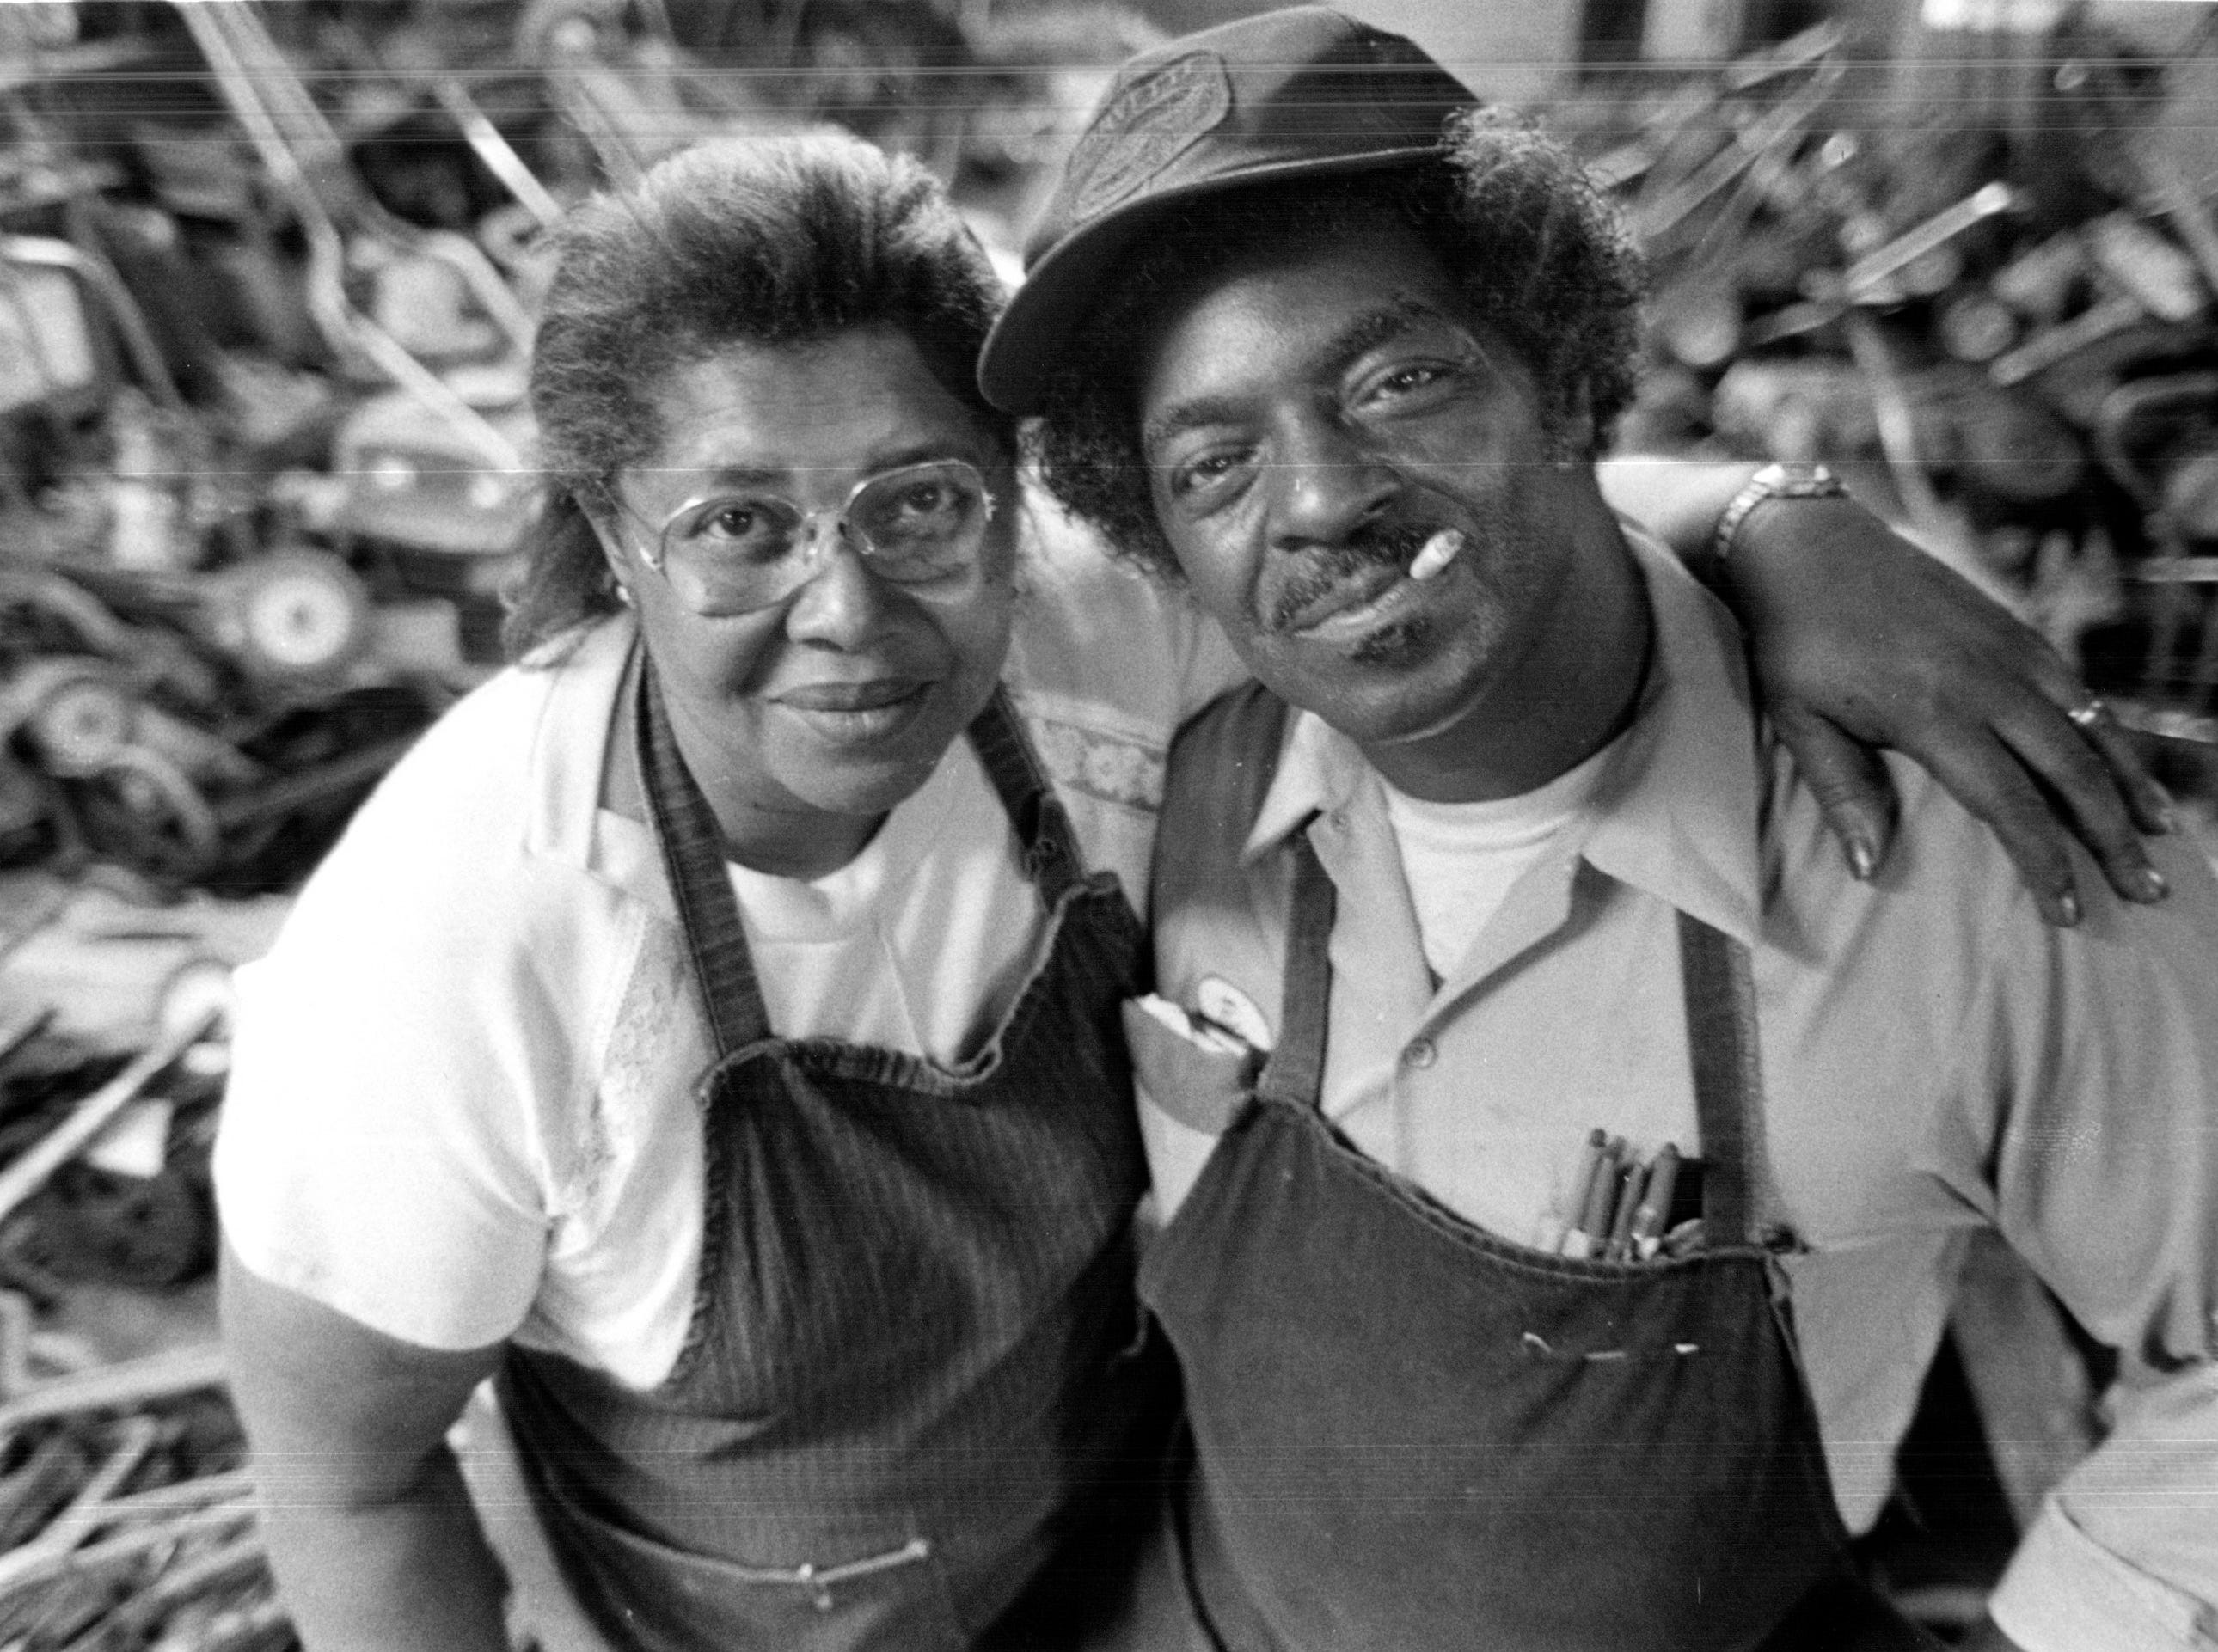 "1985: Ethel and WIllie Feagan, in the shop they're now leasing. ""We had a wonderful business in Poletown, and the relocation ruined it,"" says Ethel. Three years ago, the city bought them a new house on Detroit's east side for $34,000. It also bought a building for their business. But nothing seemed to go right after that."